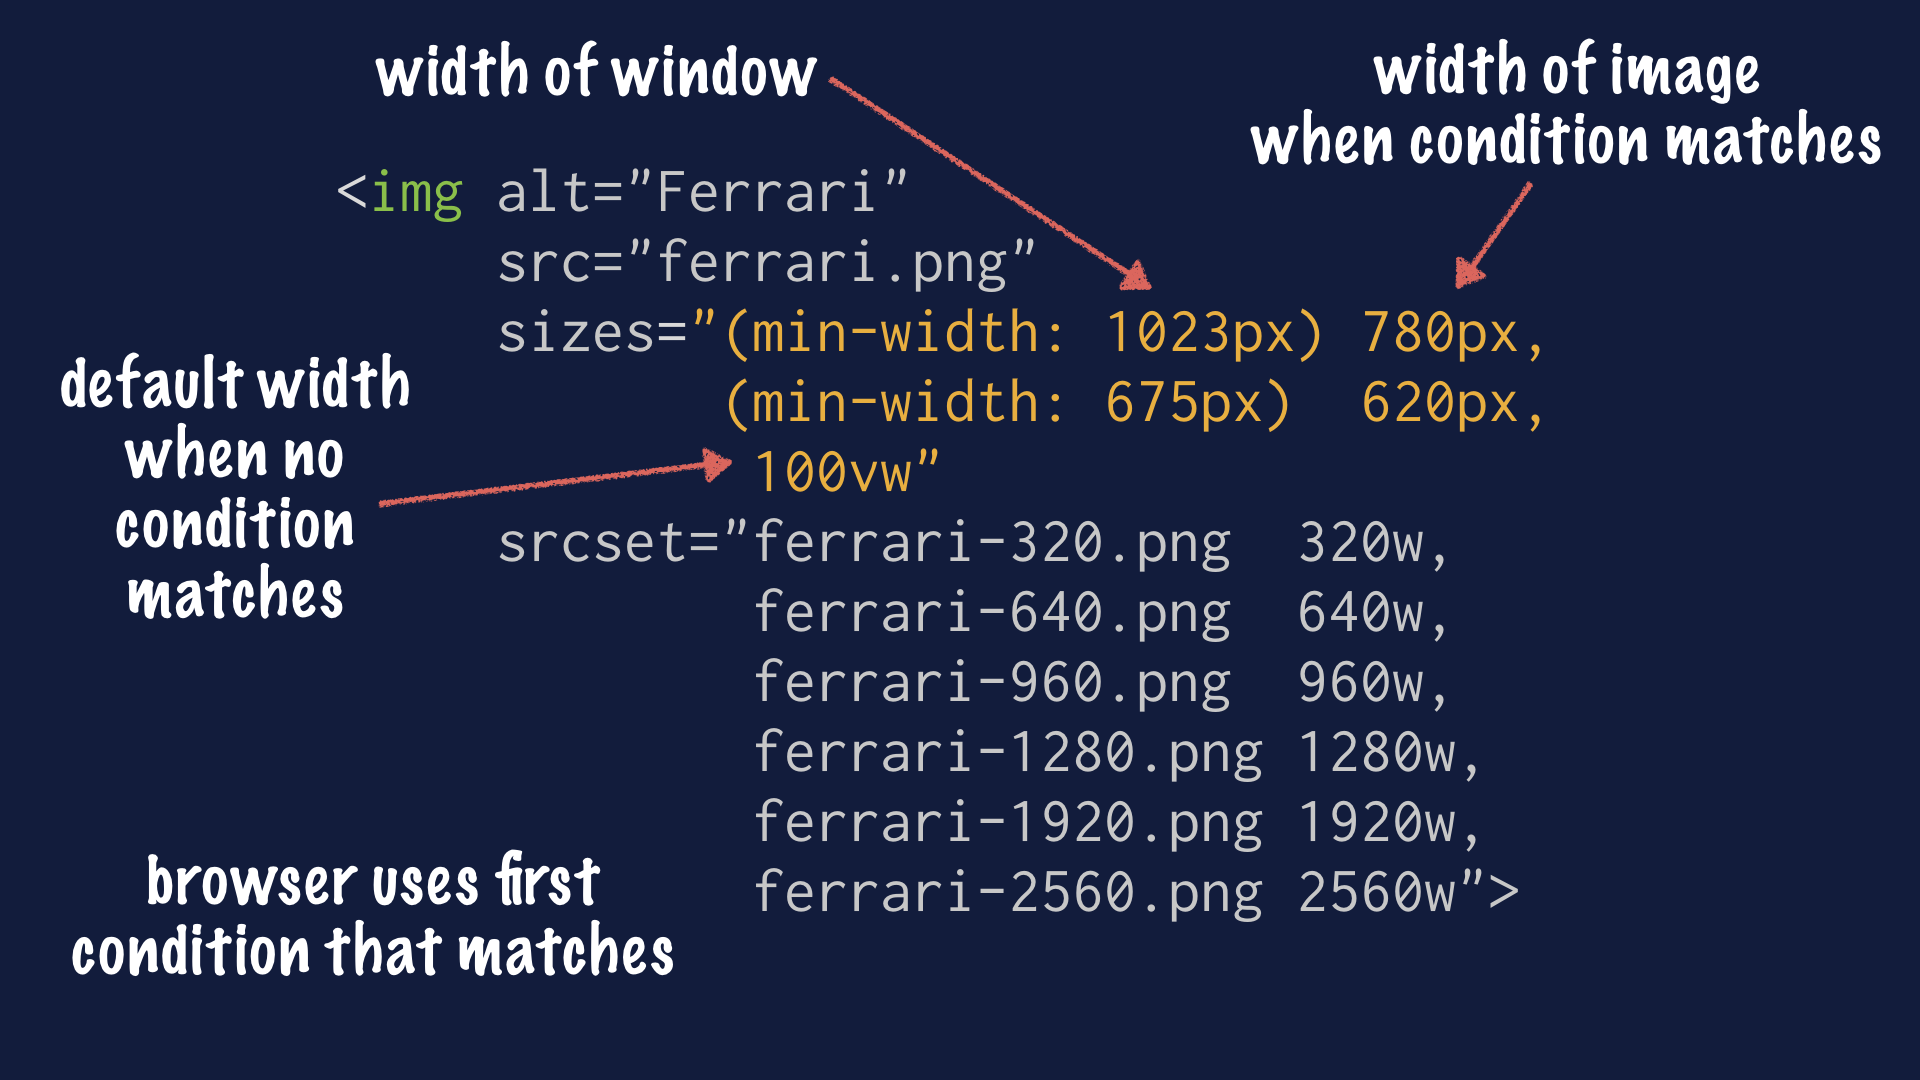 Labeled screenshot of responsive image code example, showing the sizes attribute, pointing out that it contains media queries describing the width of the window, and the width of the image when that condition matches. The last item has no media query and is the default width when no condition matches. The browser users the first condition that matches.